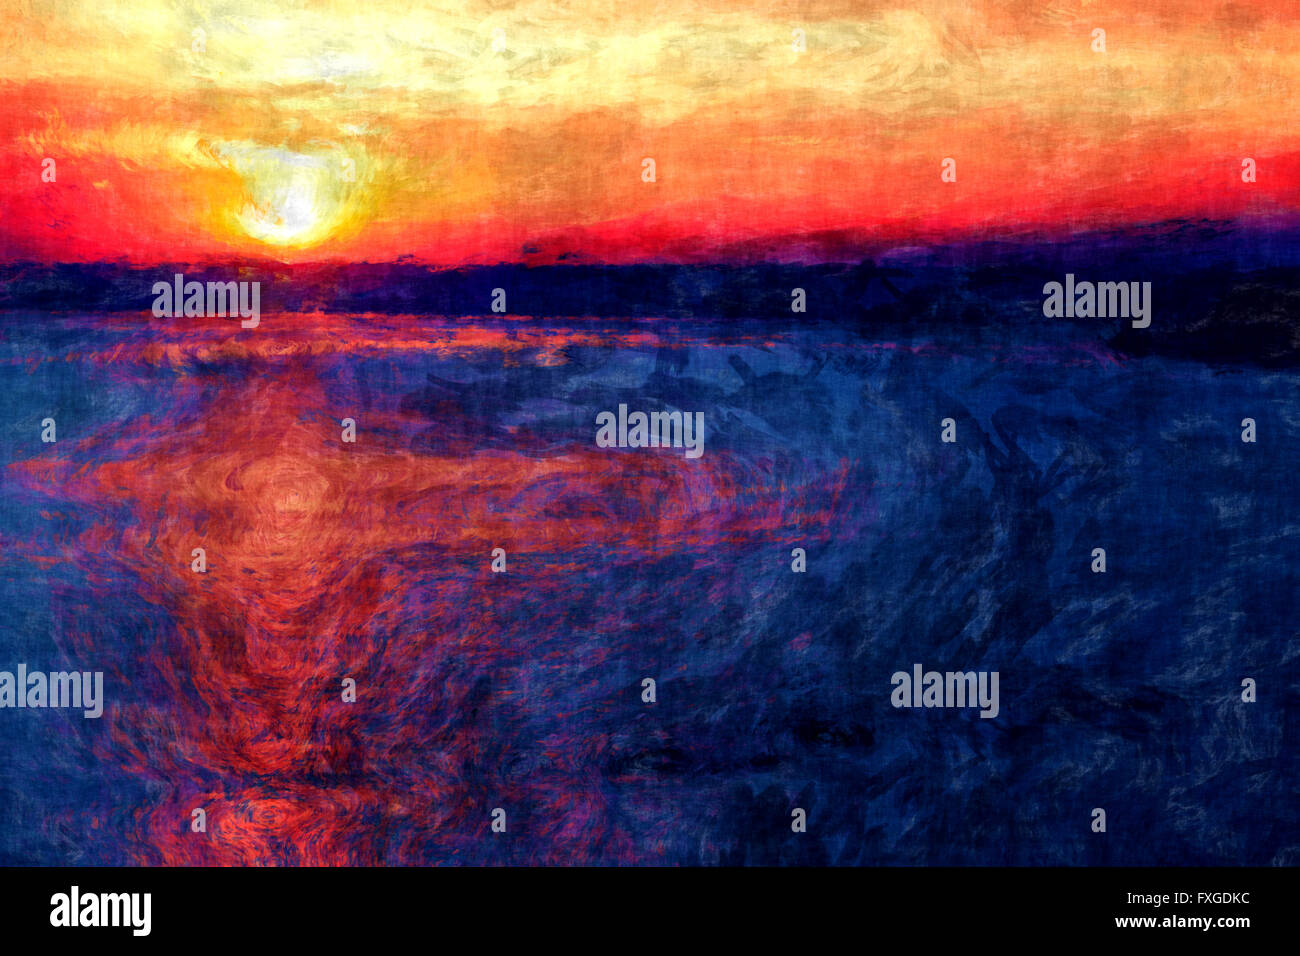 sunset painting impressionism, amazing sunset scene brush painting, sun light reflection, evening sun, impressionism - Stock Image